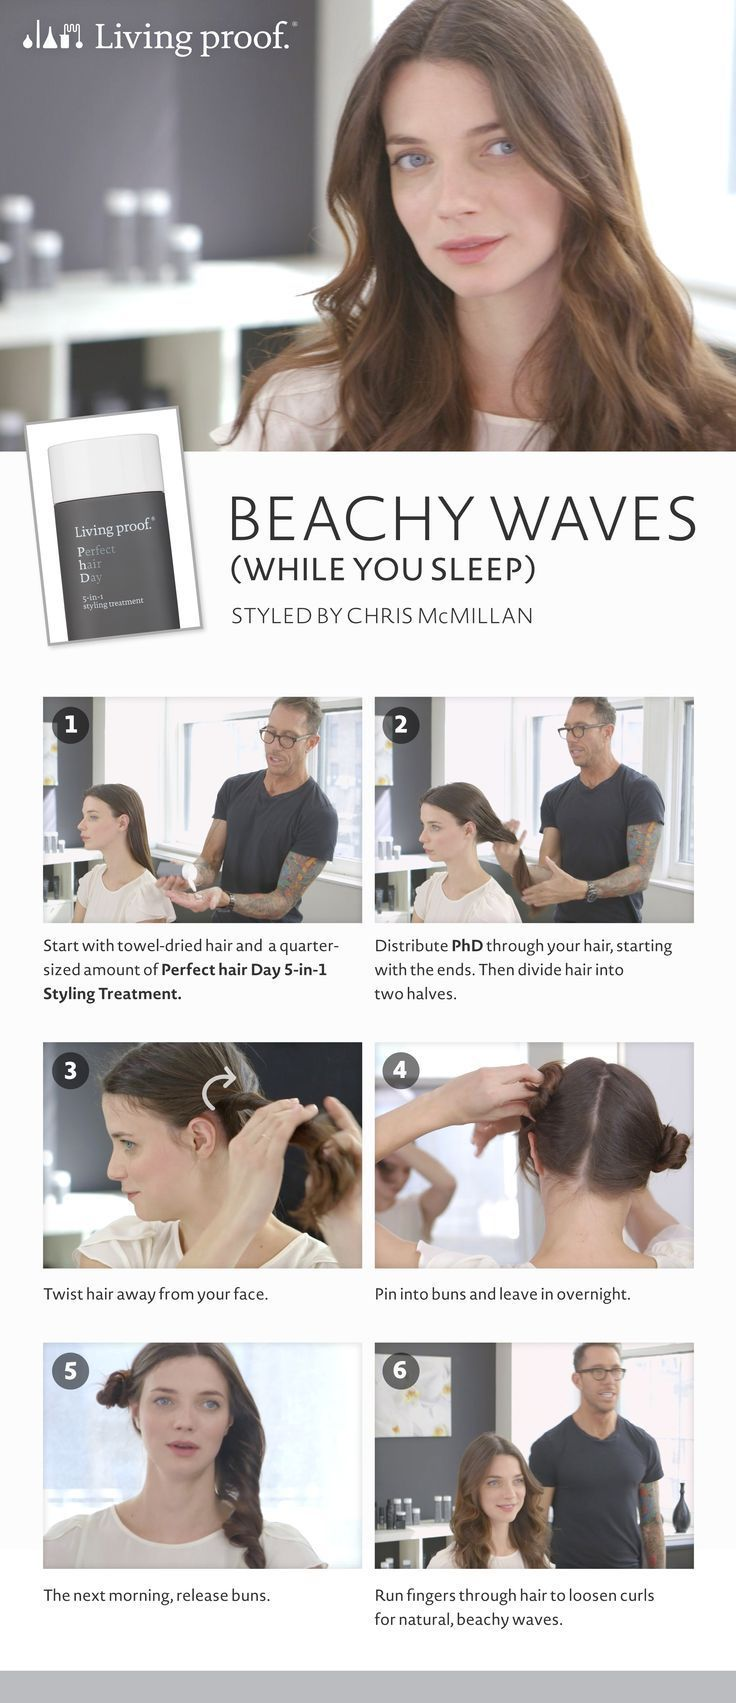 Hereus the secret to styling your hair in natural beachy waves